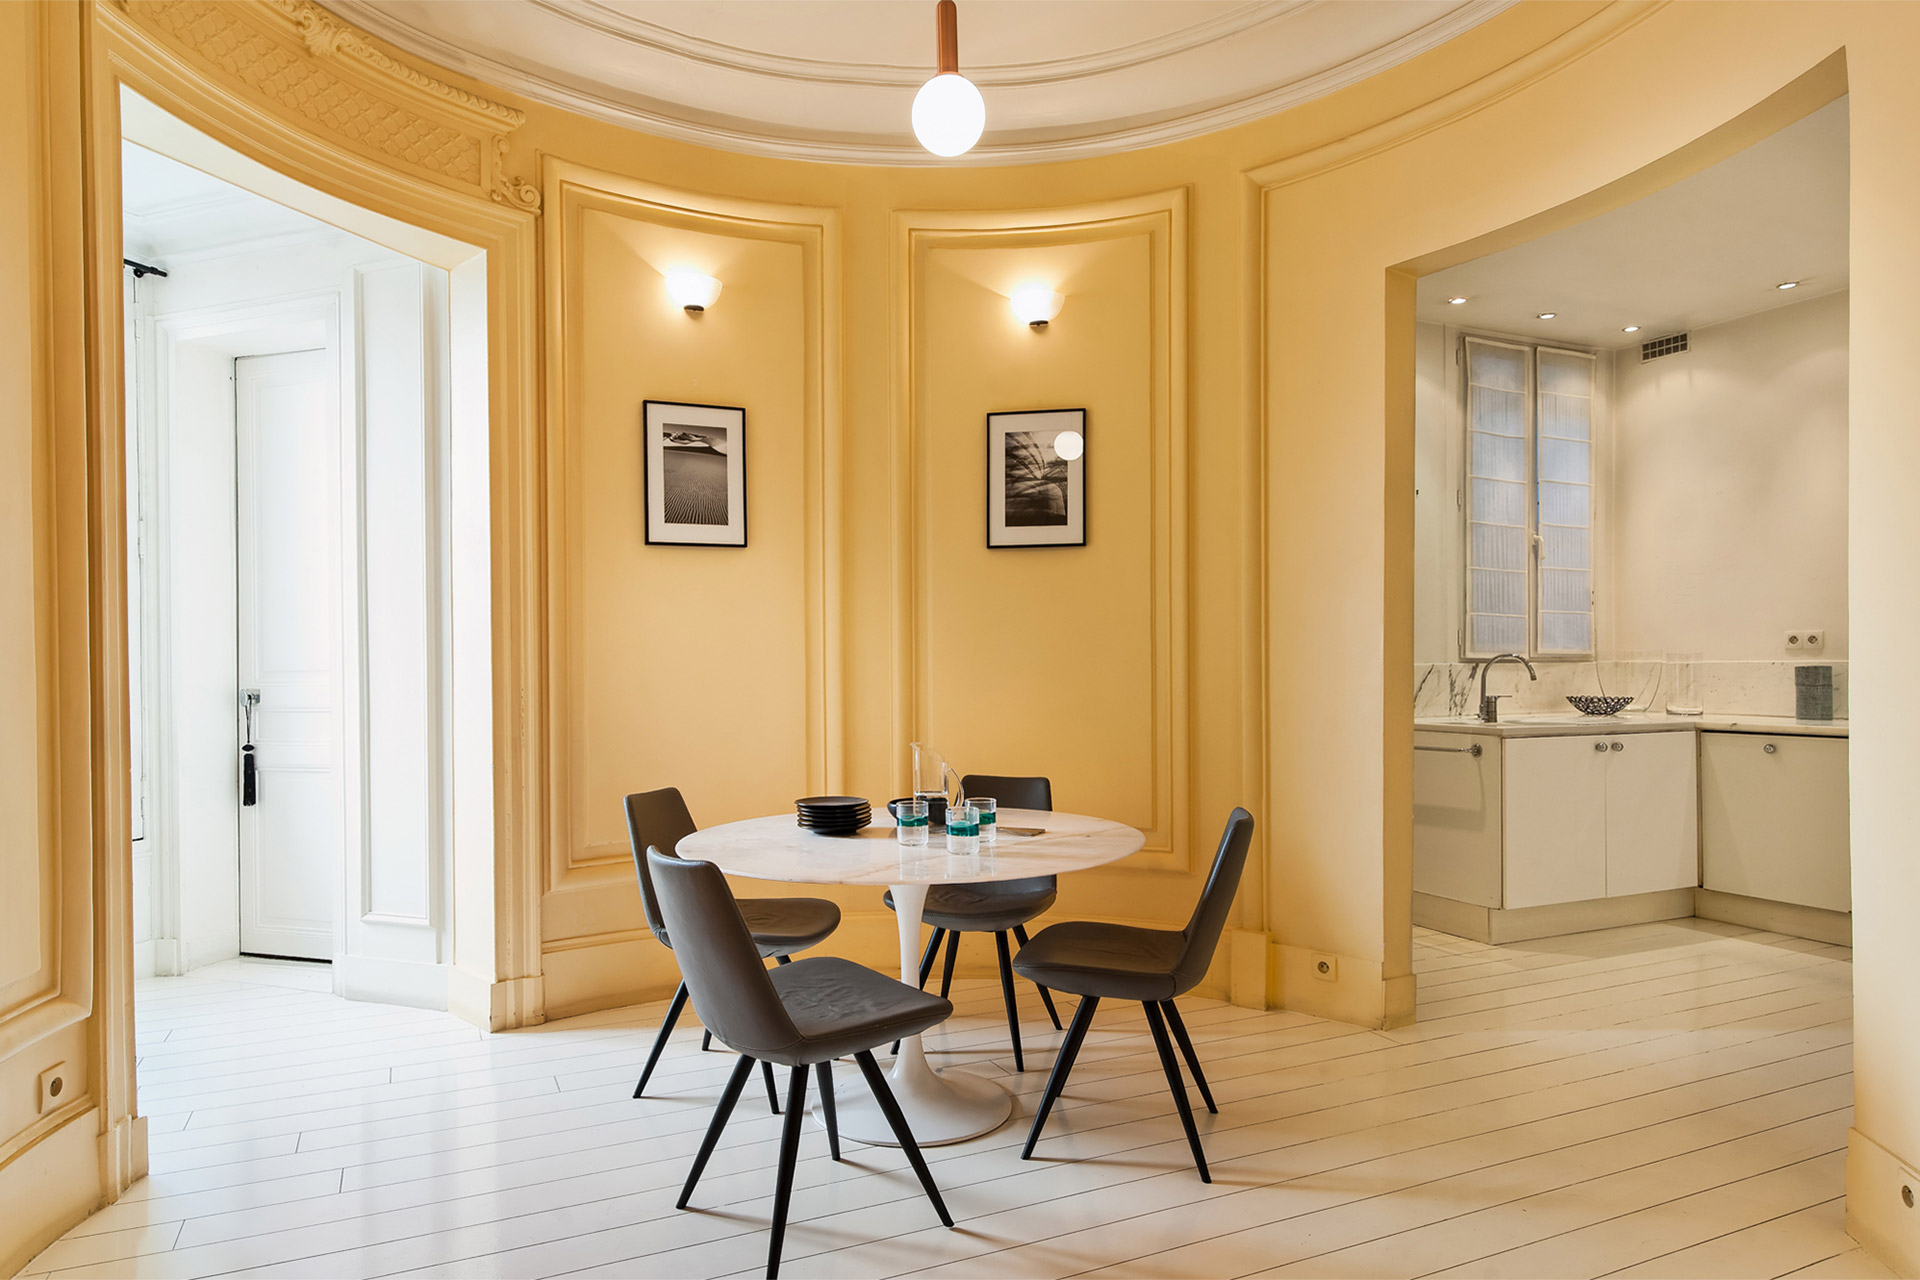 Unique round breakfast nook next to the kitchen in the Cavailles Paris rental